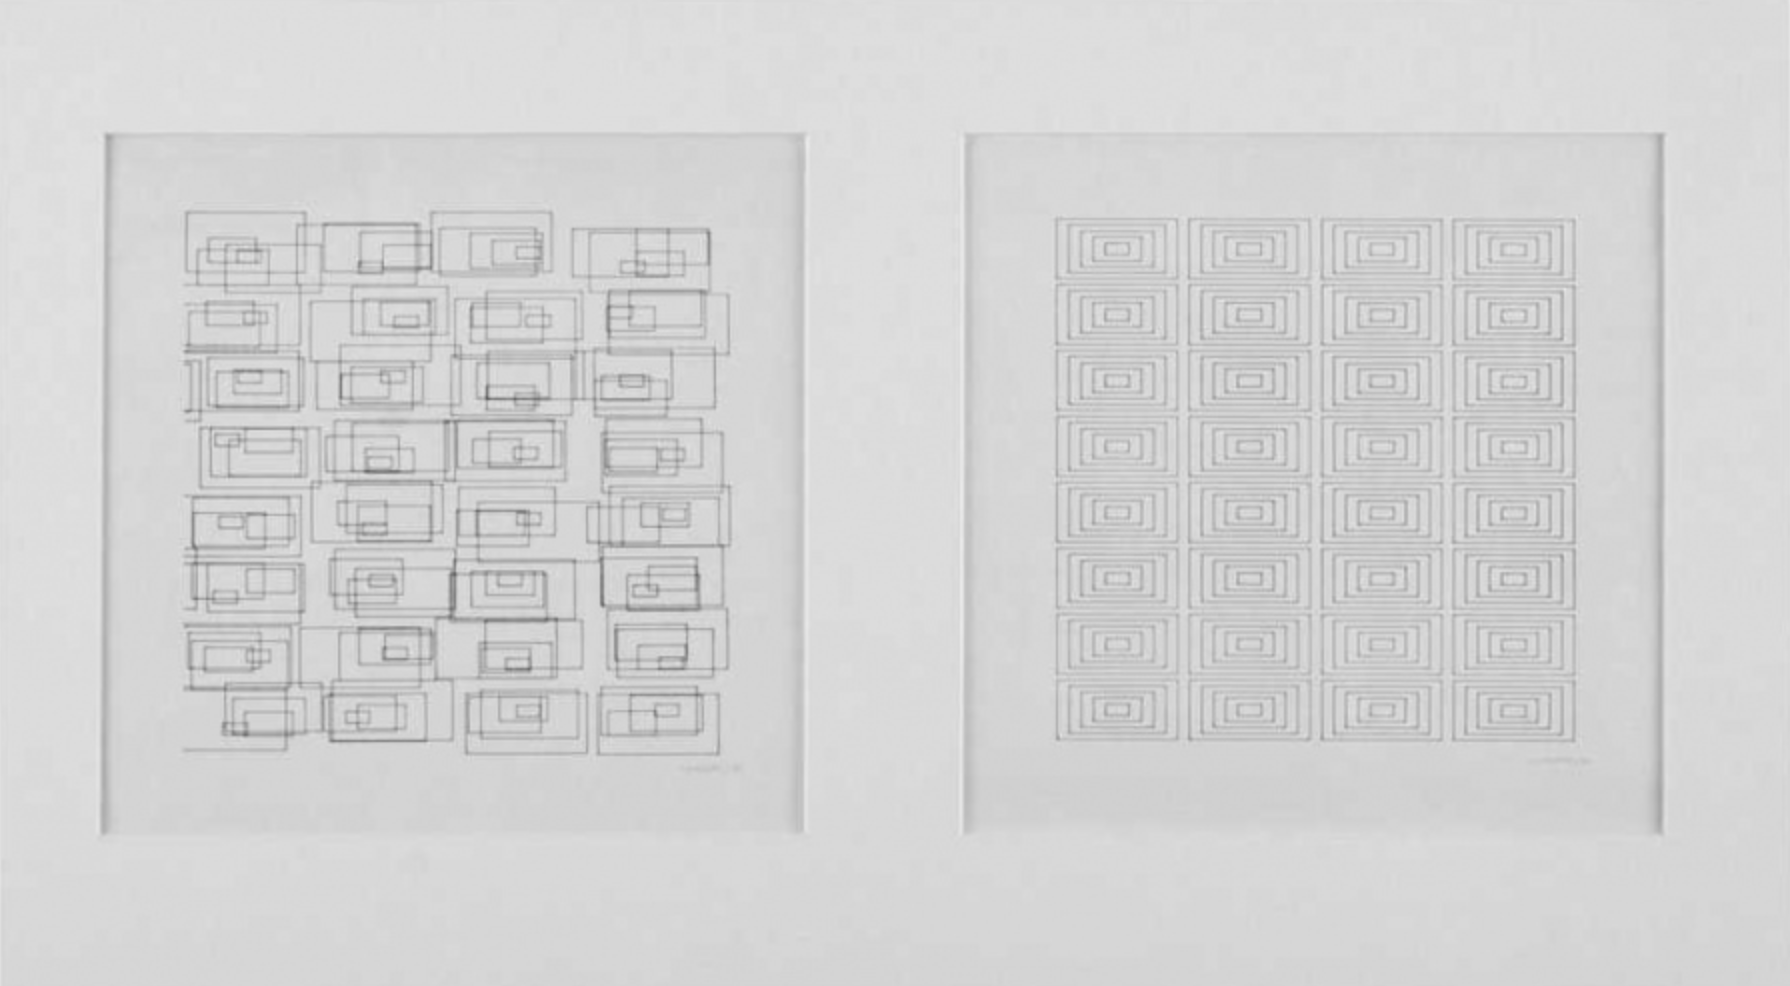 Vera Molnar, Transformations de 160 rectangles, completed series of 6 sheets, 2 variations, plotter drawing, 1976, +/- 21 x 21 cm